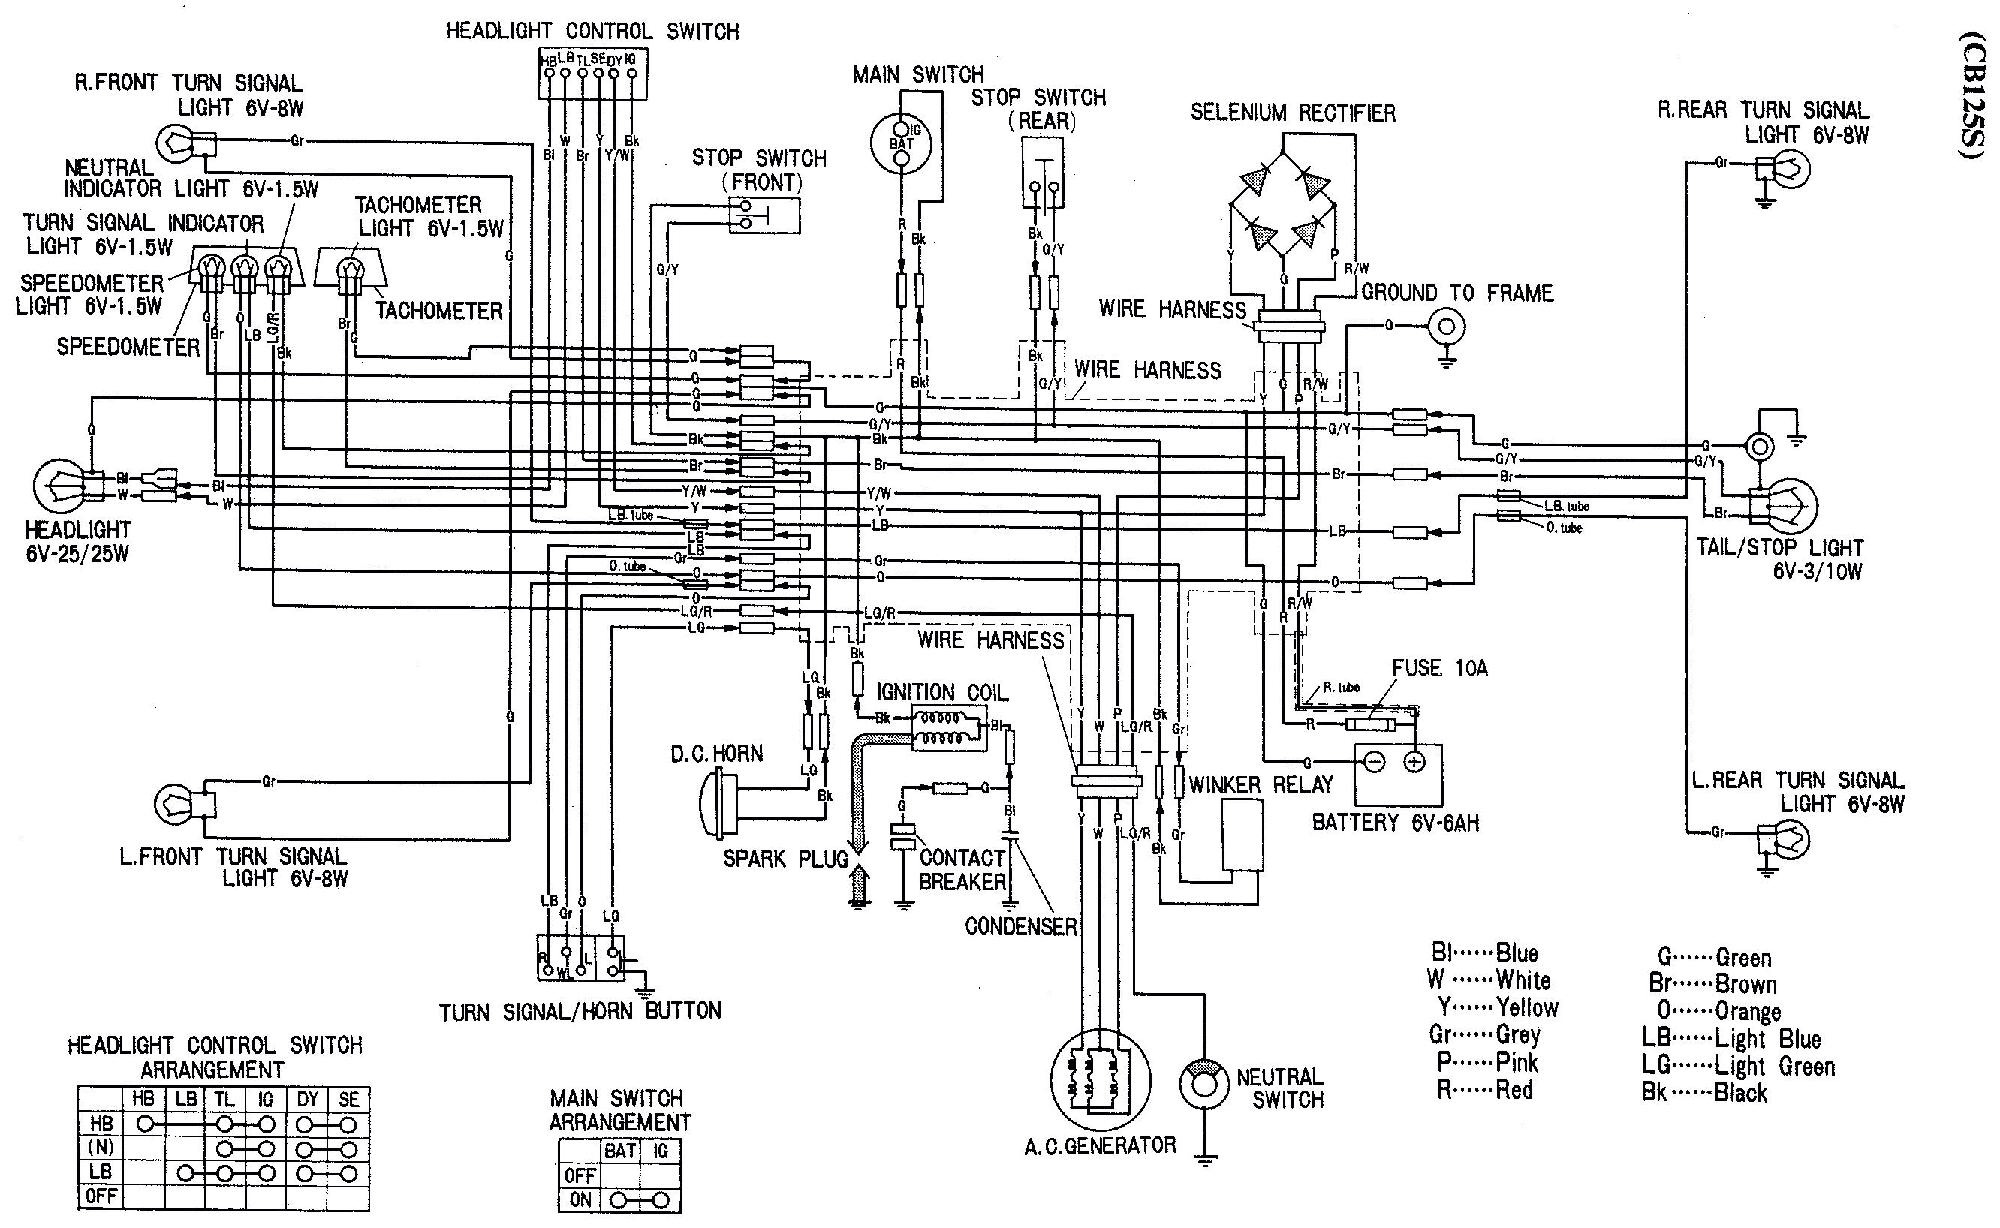 Honda 125 Motorcycle Wiring Diagram